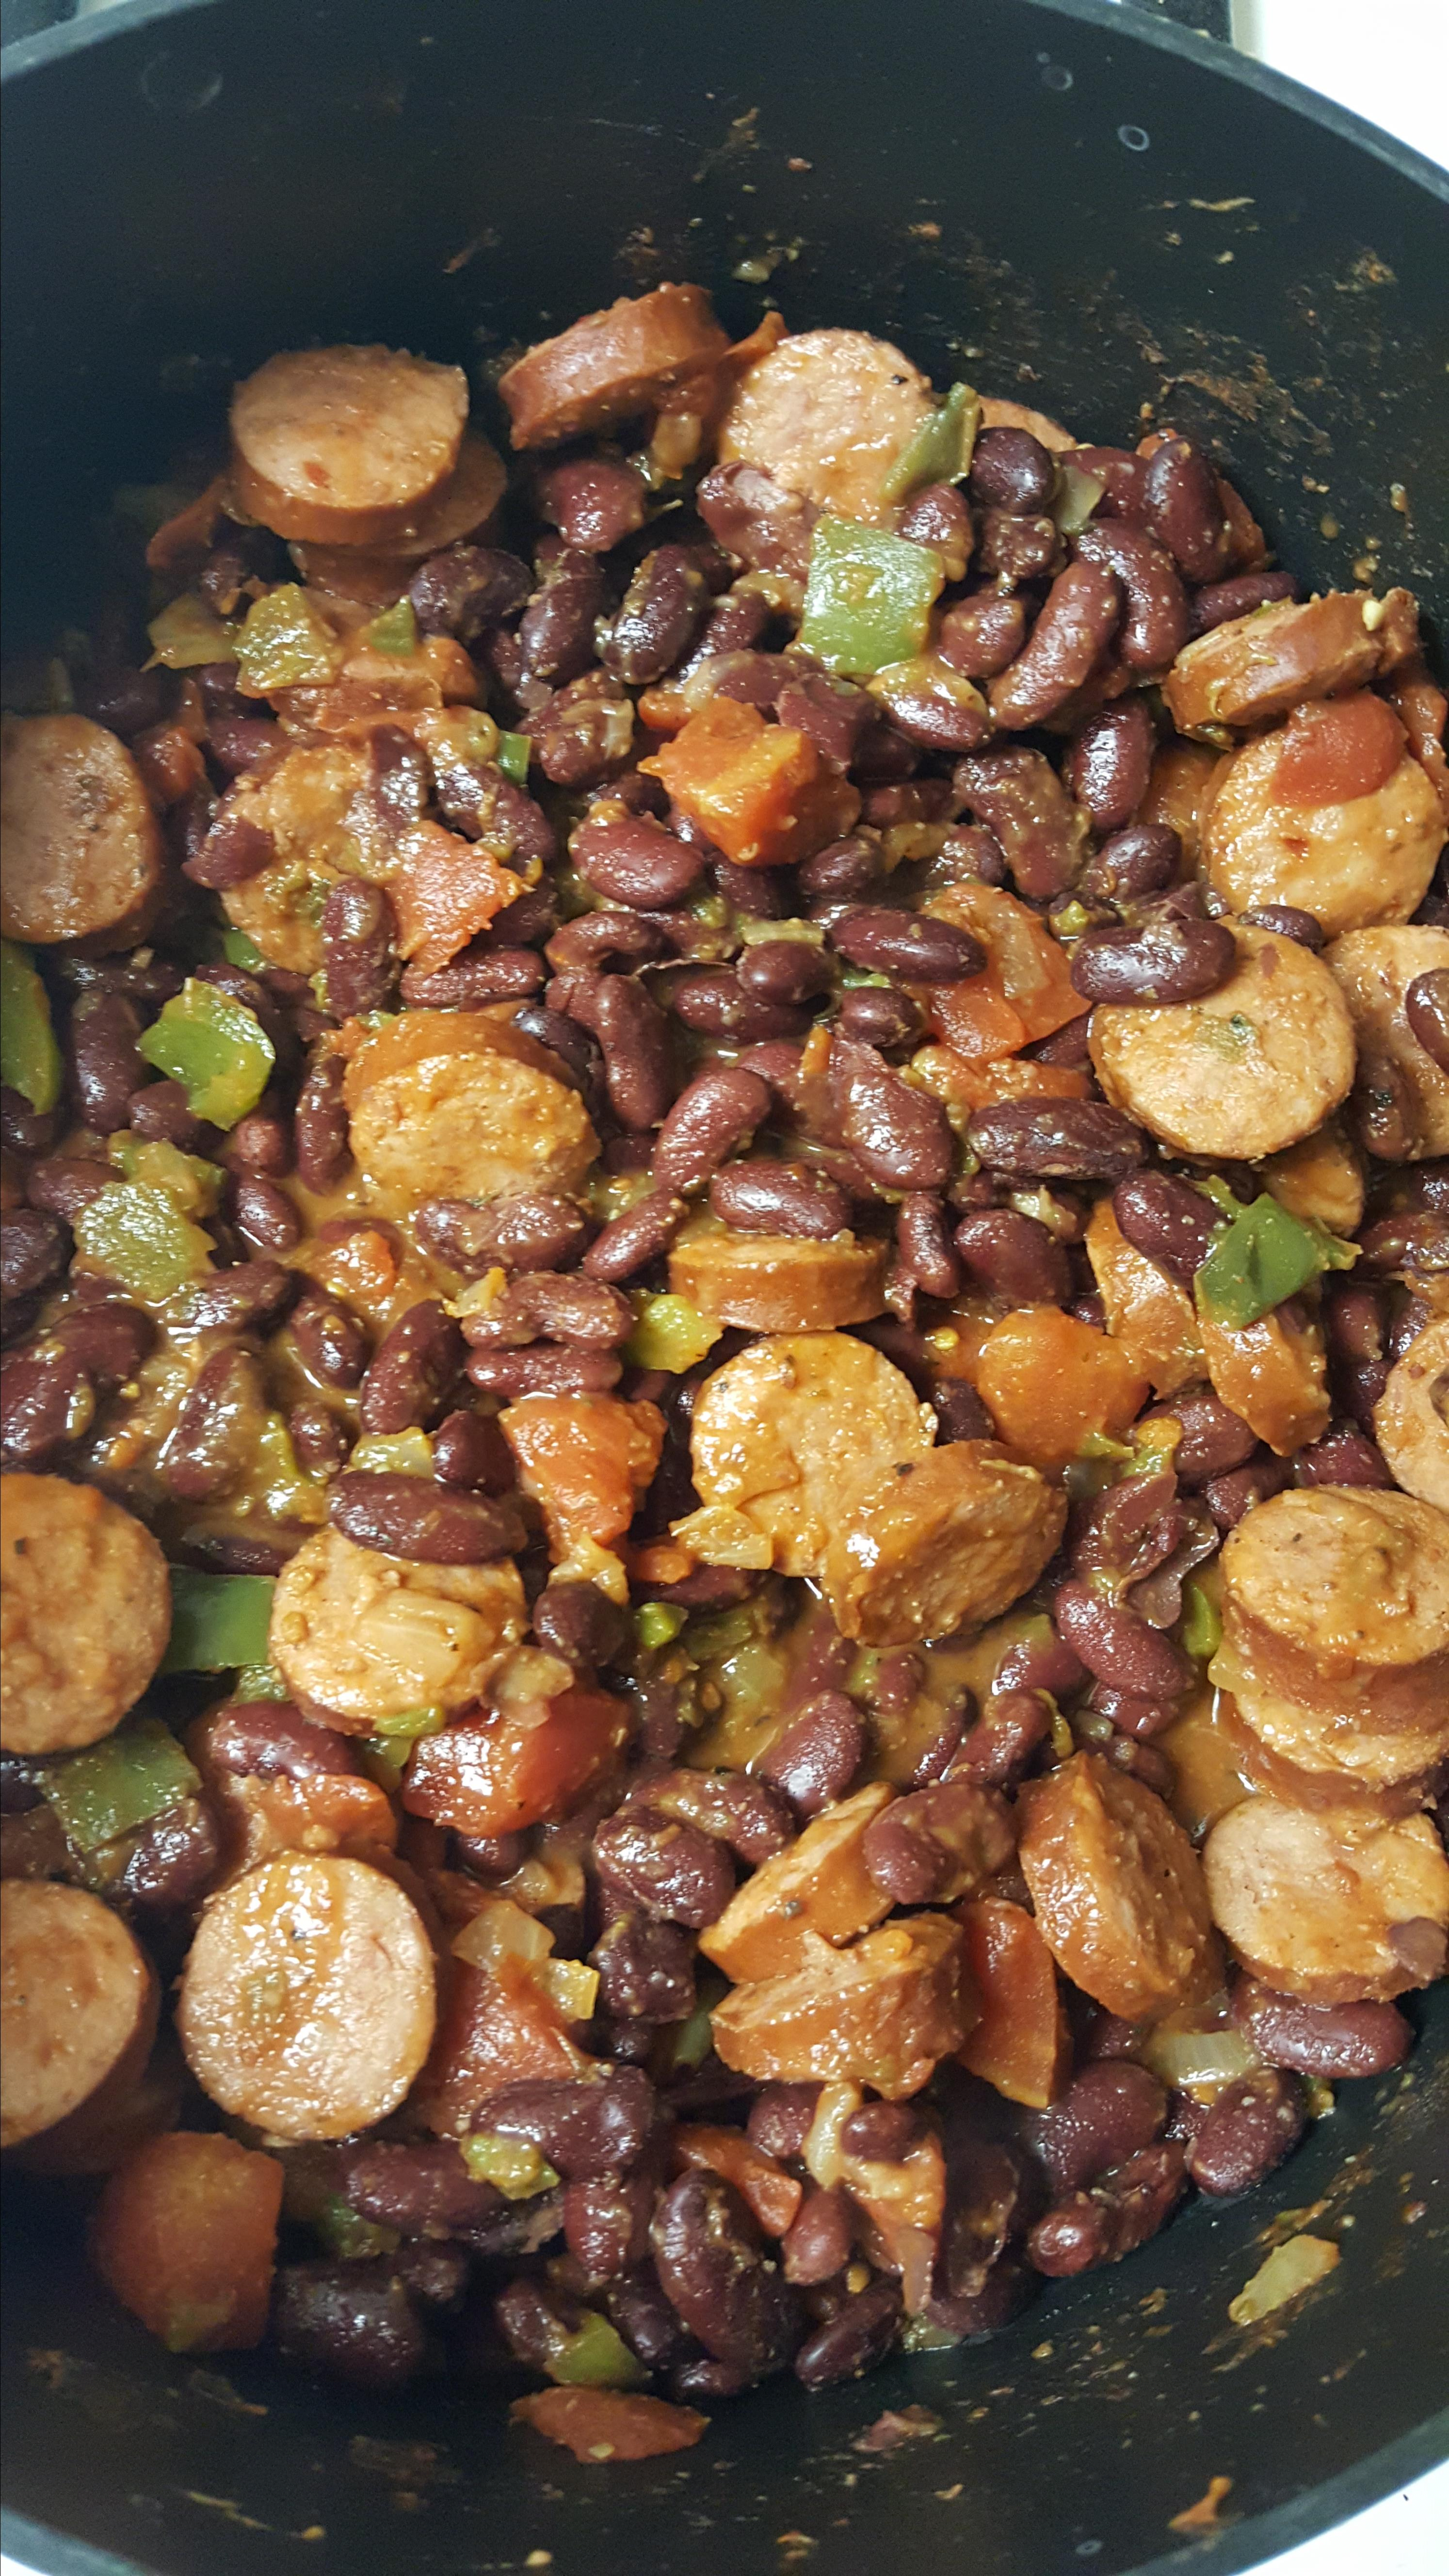 Jessica's Red Beans and Rice